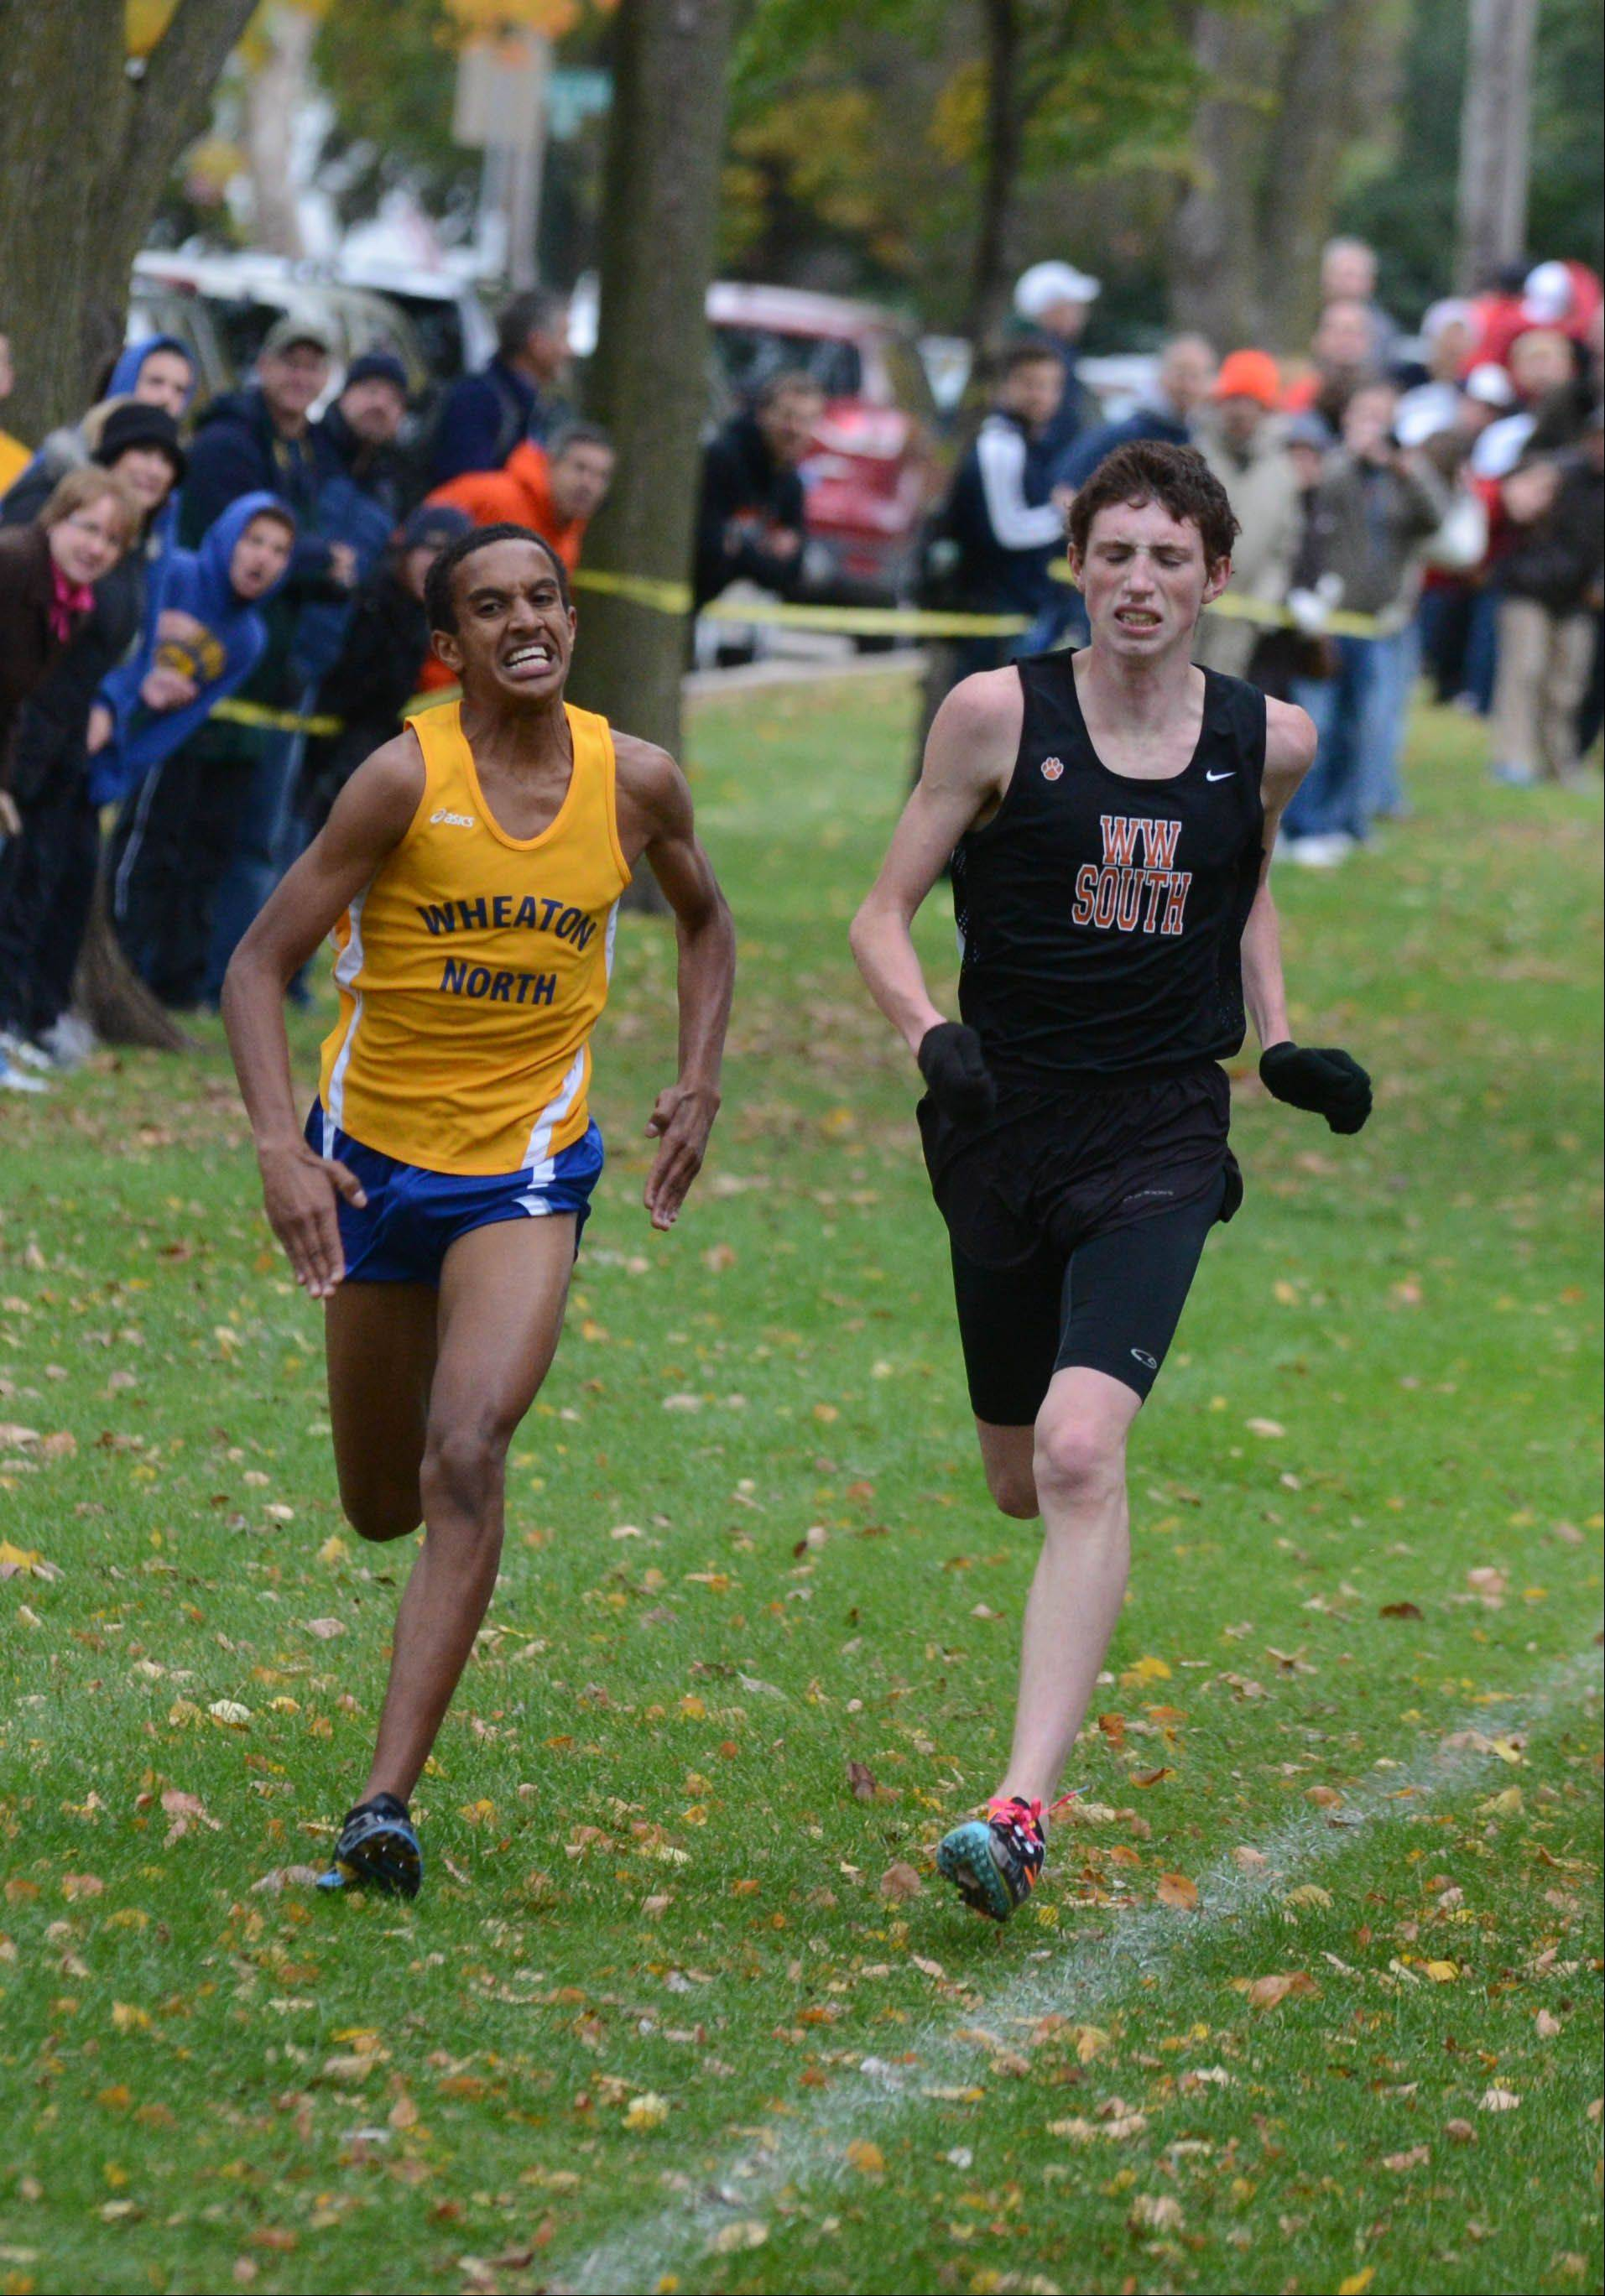 Joseph Emmanuel,left, of Wheaton North and Nolan McKenna of Wheaton Warrenville South race for the line during the DuPage Valley Conference boys and girls cross country meet Friday in Lombard.